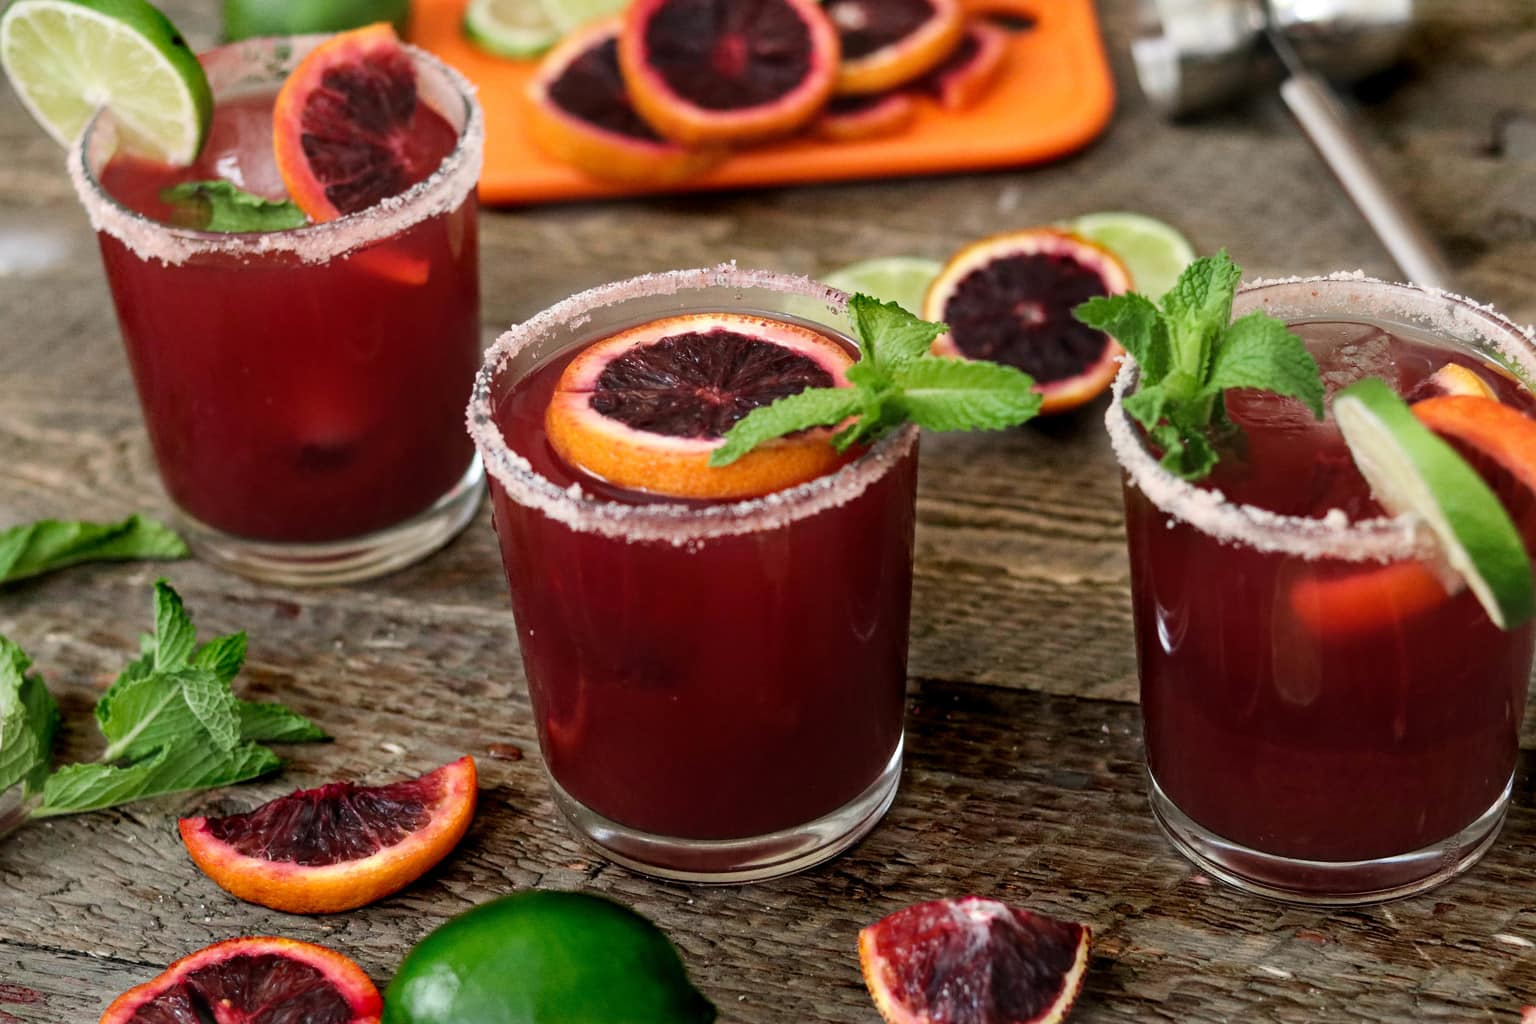 Refreshing Margarita Recipes to Cool You Down This Summer: Blood Orange Margaritas